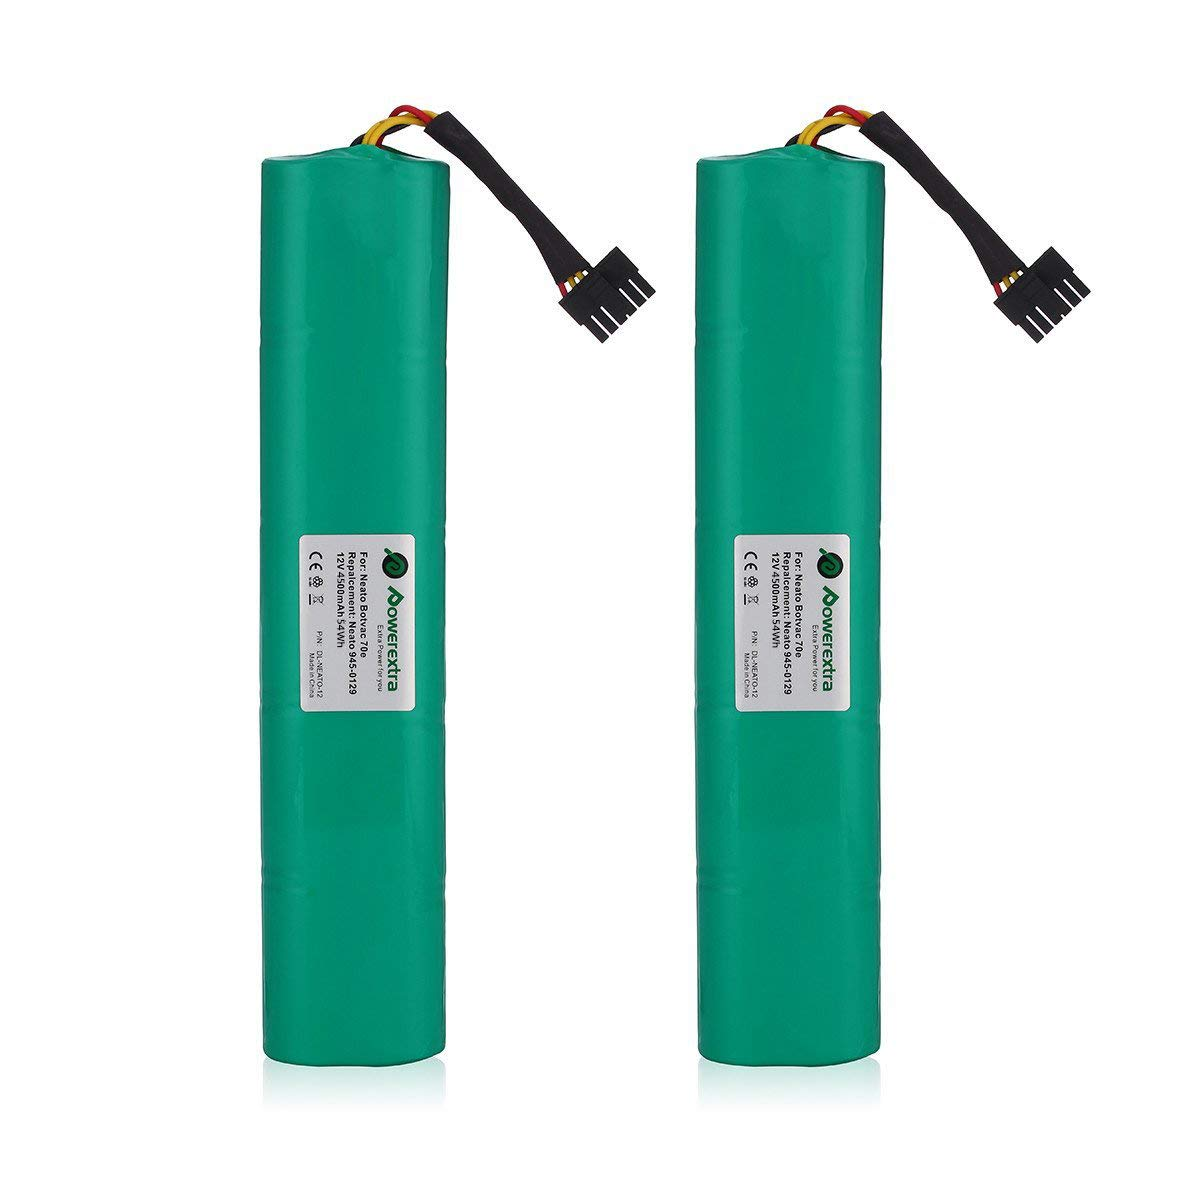 Powerextra 2 Pack 12V 4500mAh Ni-Mh Replacement Battery Compatible with Neato Botavc Series and Botvac D Series Neato Botvac 70e, 75, 80, 85, D75, D80, Botvac D85